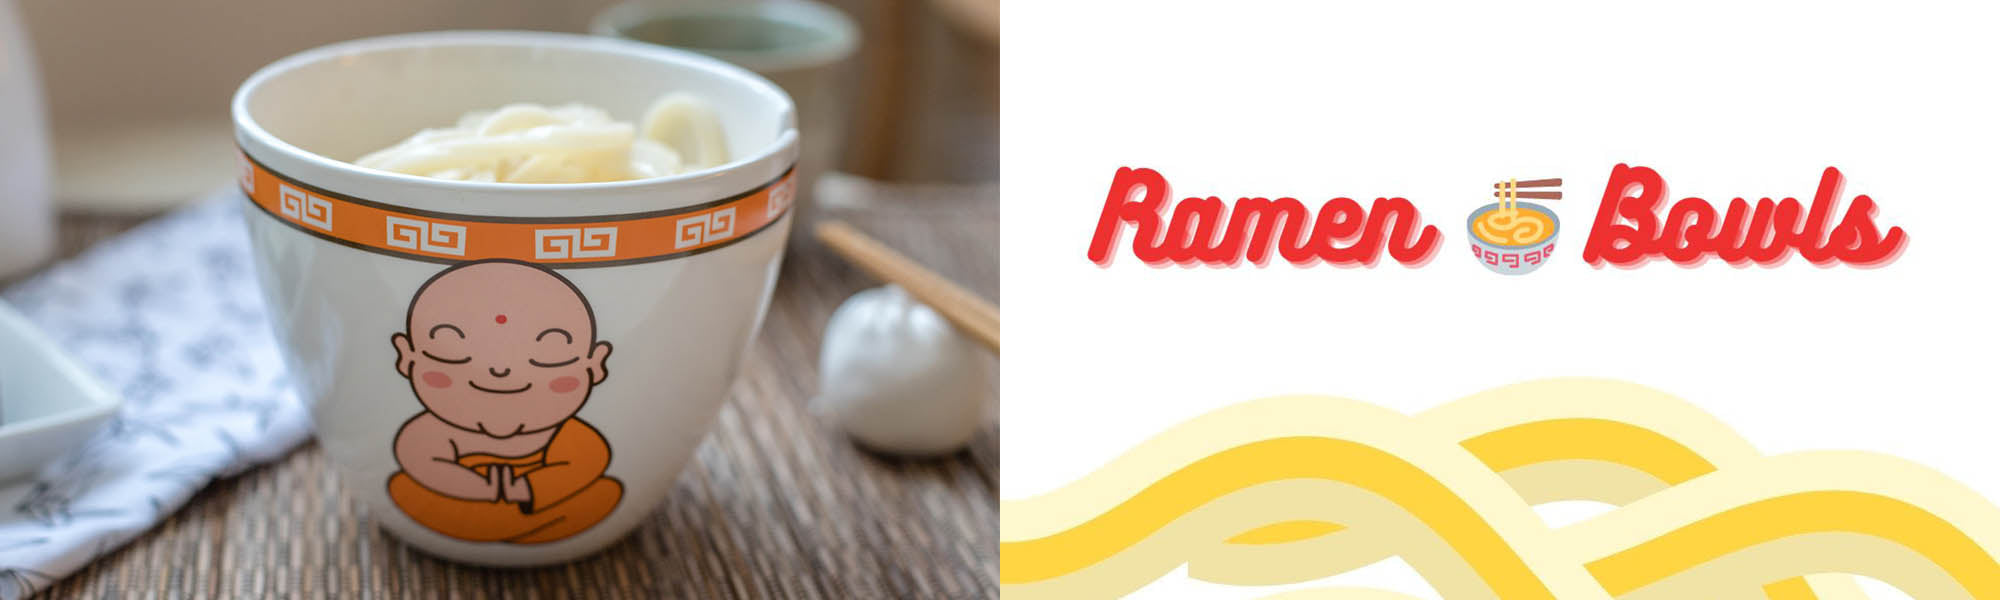 Ramen & Noodle Bowl Collection at Toynk.com